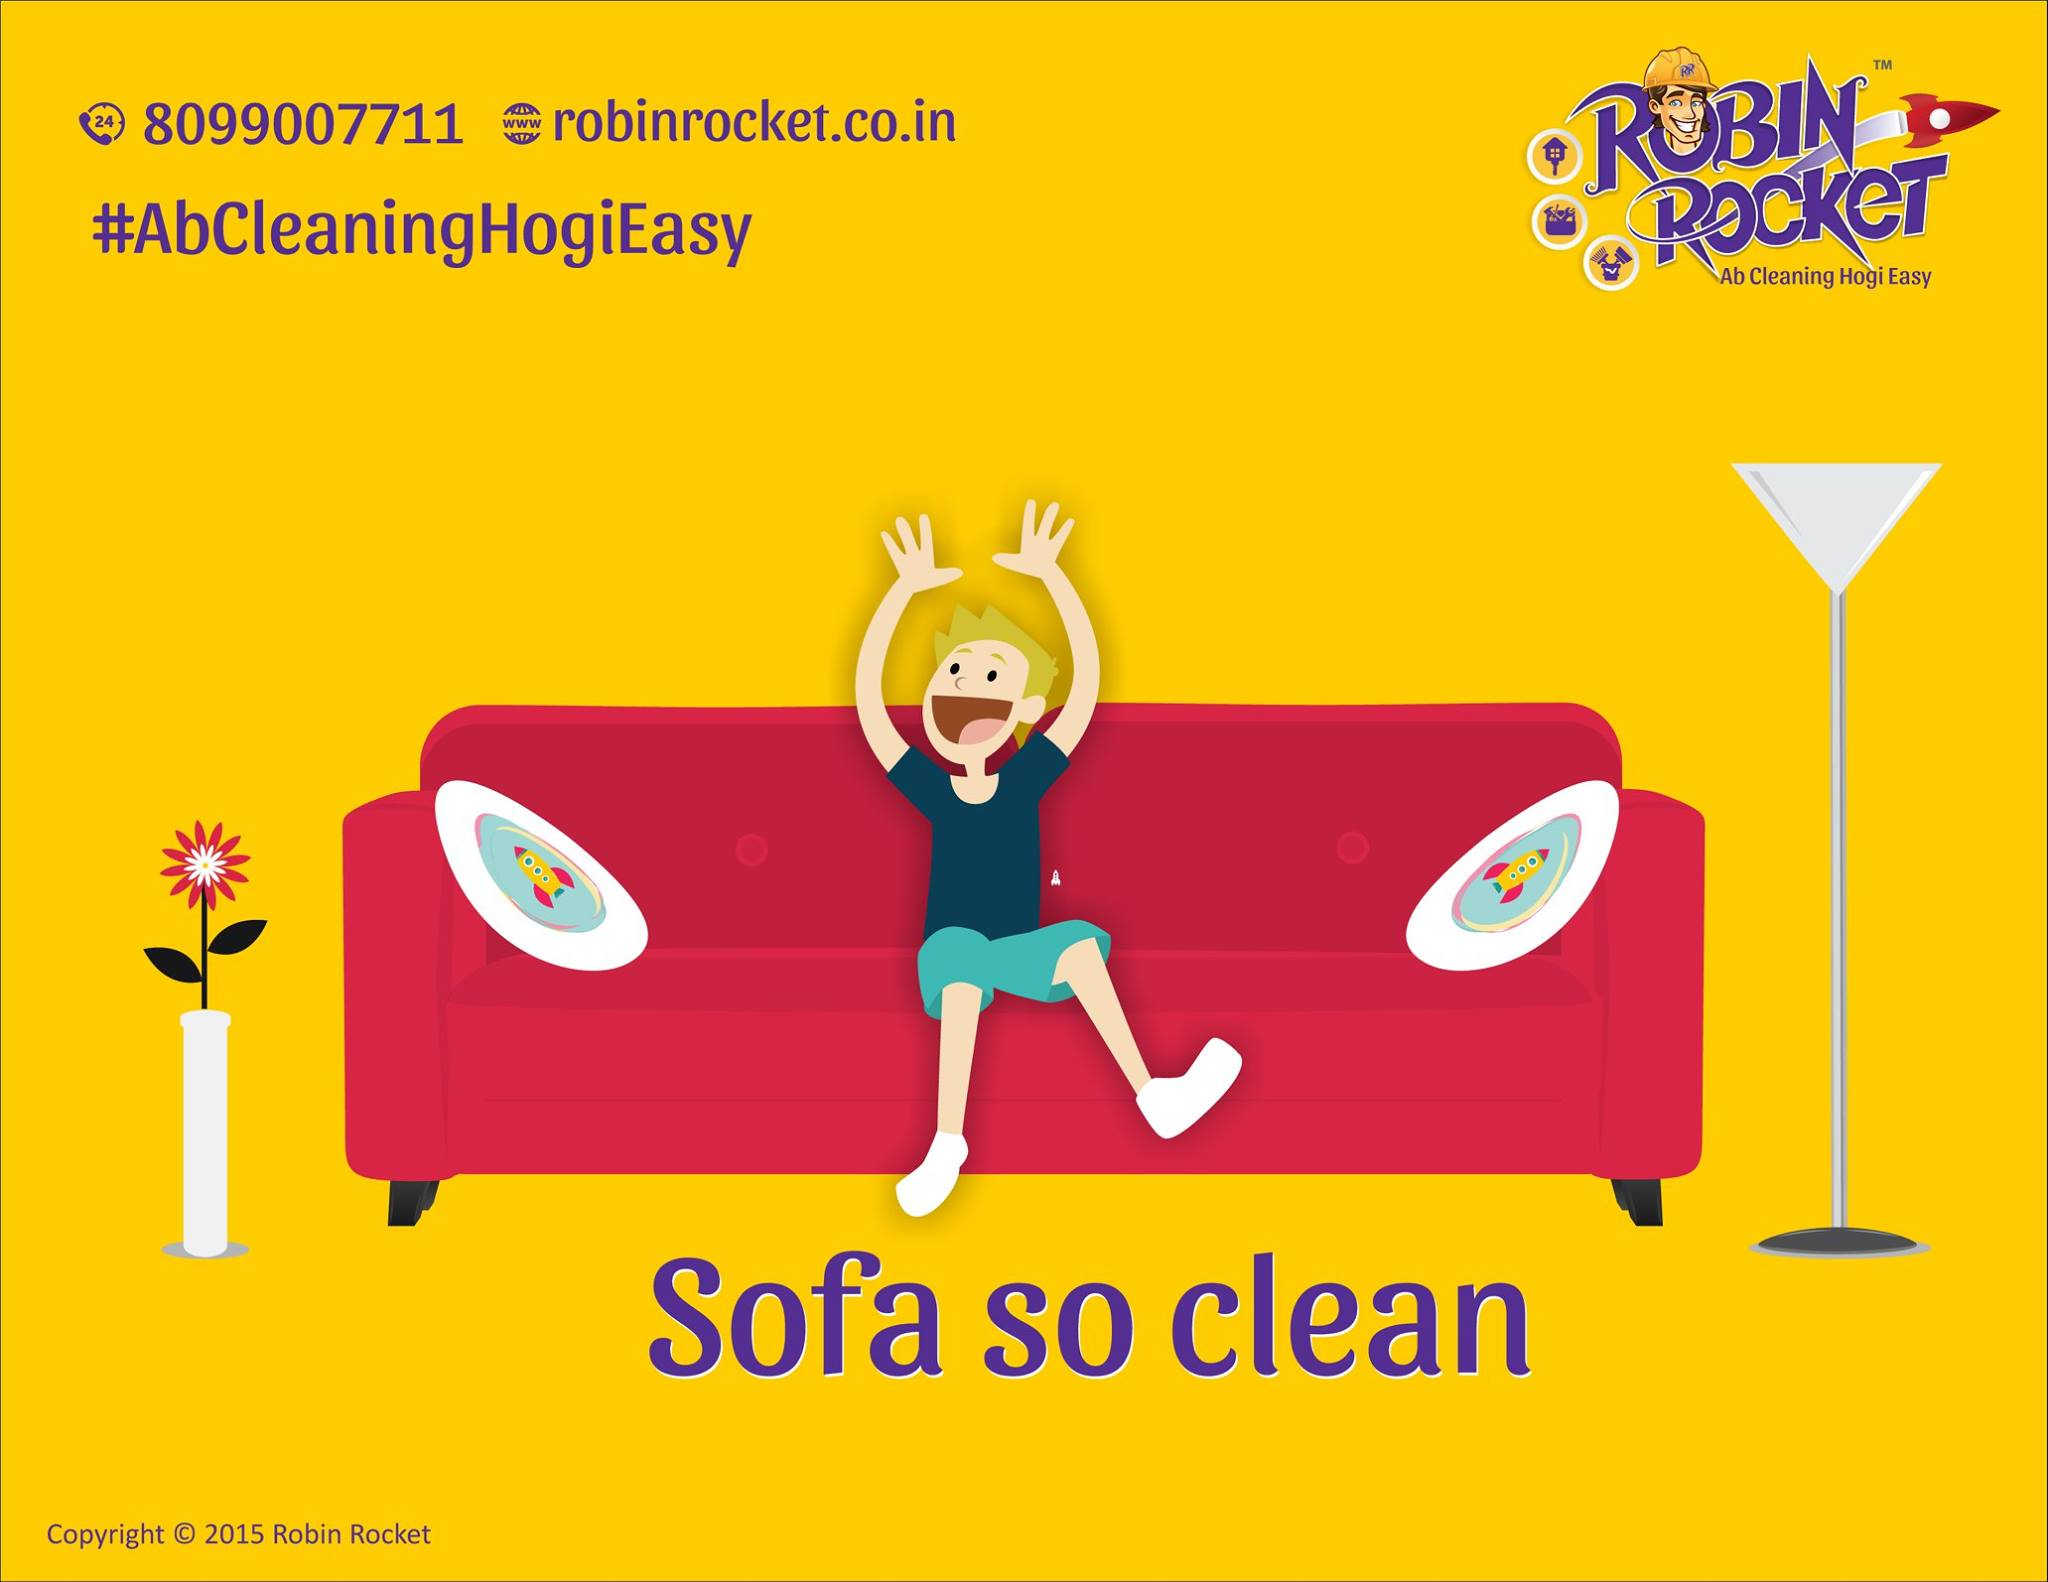 sofa cleaning services in chennai kivik assembly review professional mattress at house best for home office hotel india just got better with our easy service